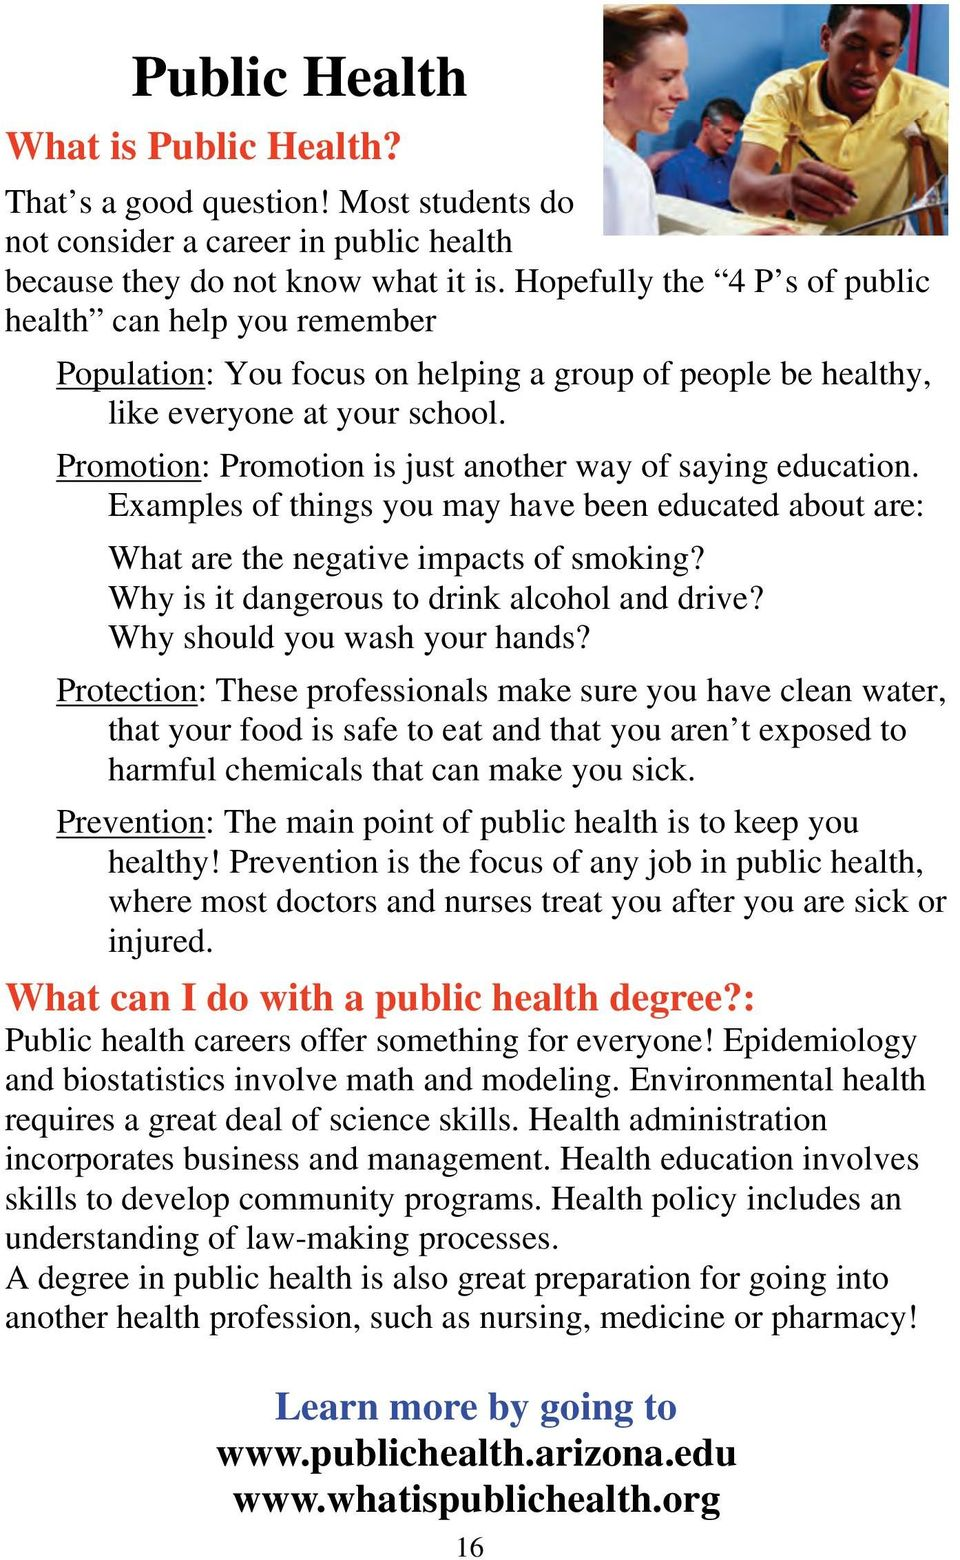 Promotion: Promotion is just another way of saying education. Examples of things you may have been educated about are: What are the negative impacts of smoking?